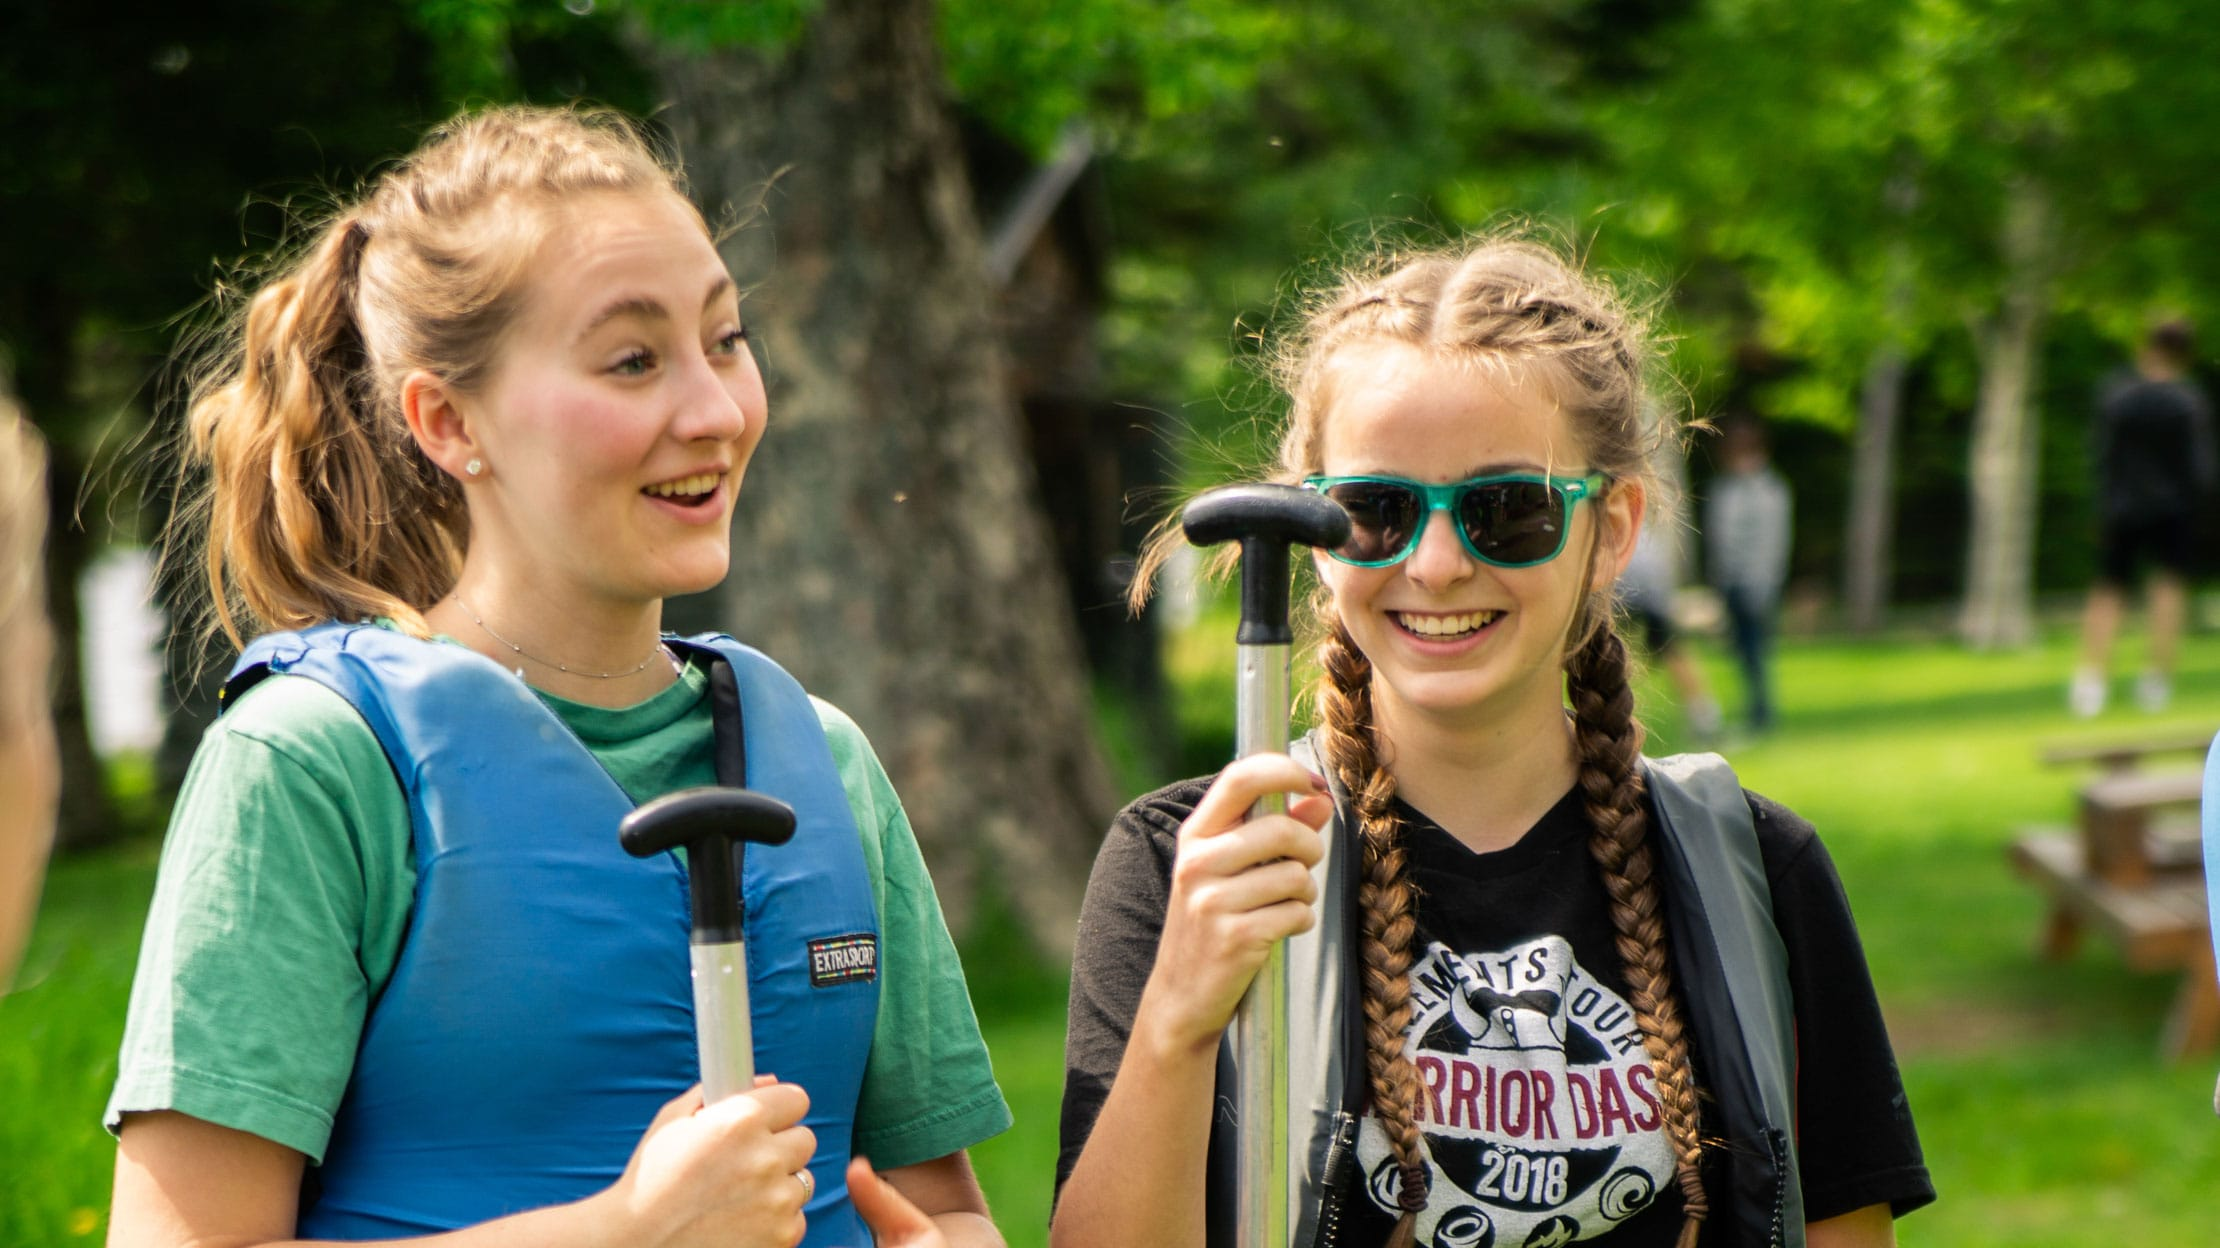 Two girls talking while holding paddles